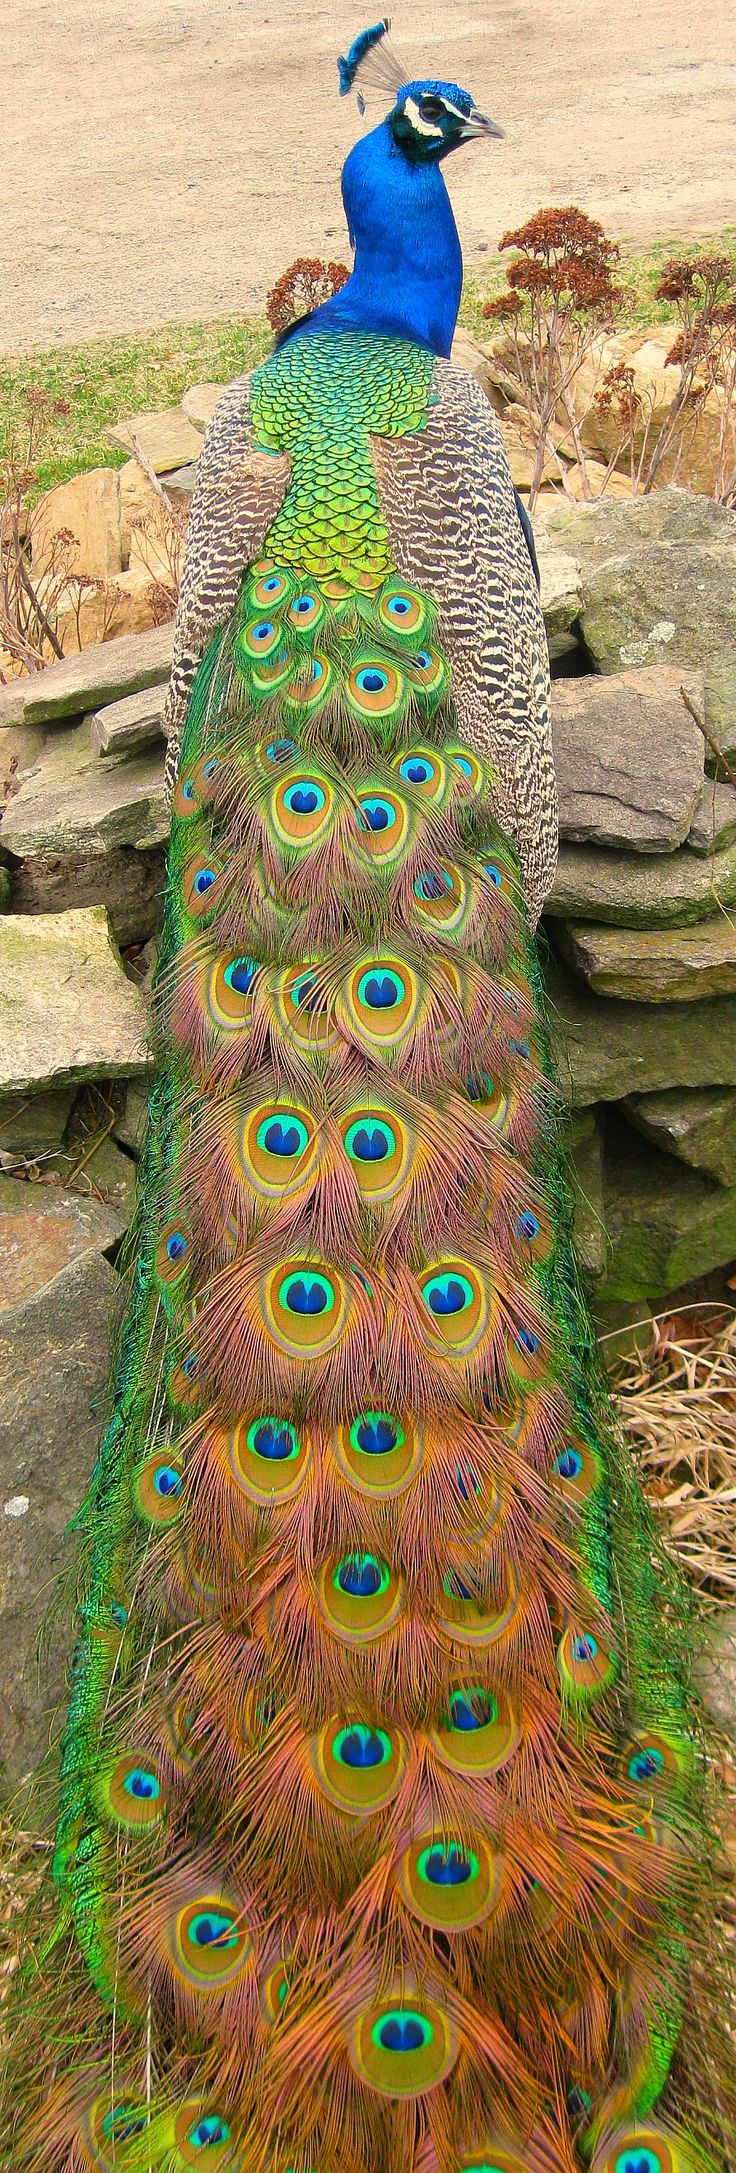 Drawn peafowl creative eye Best Birds are Peacock of